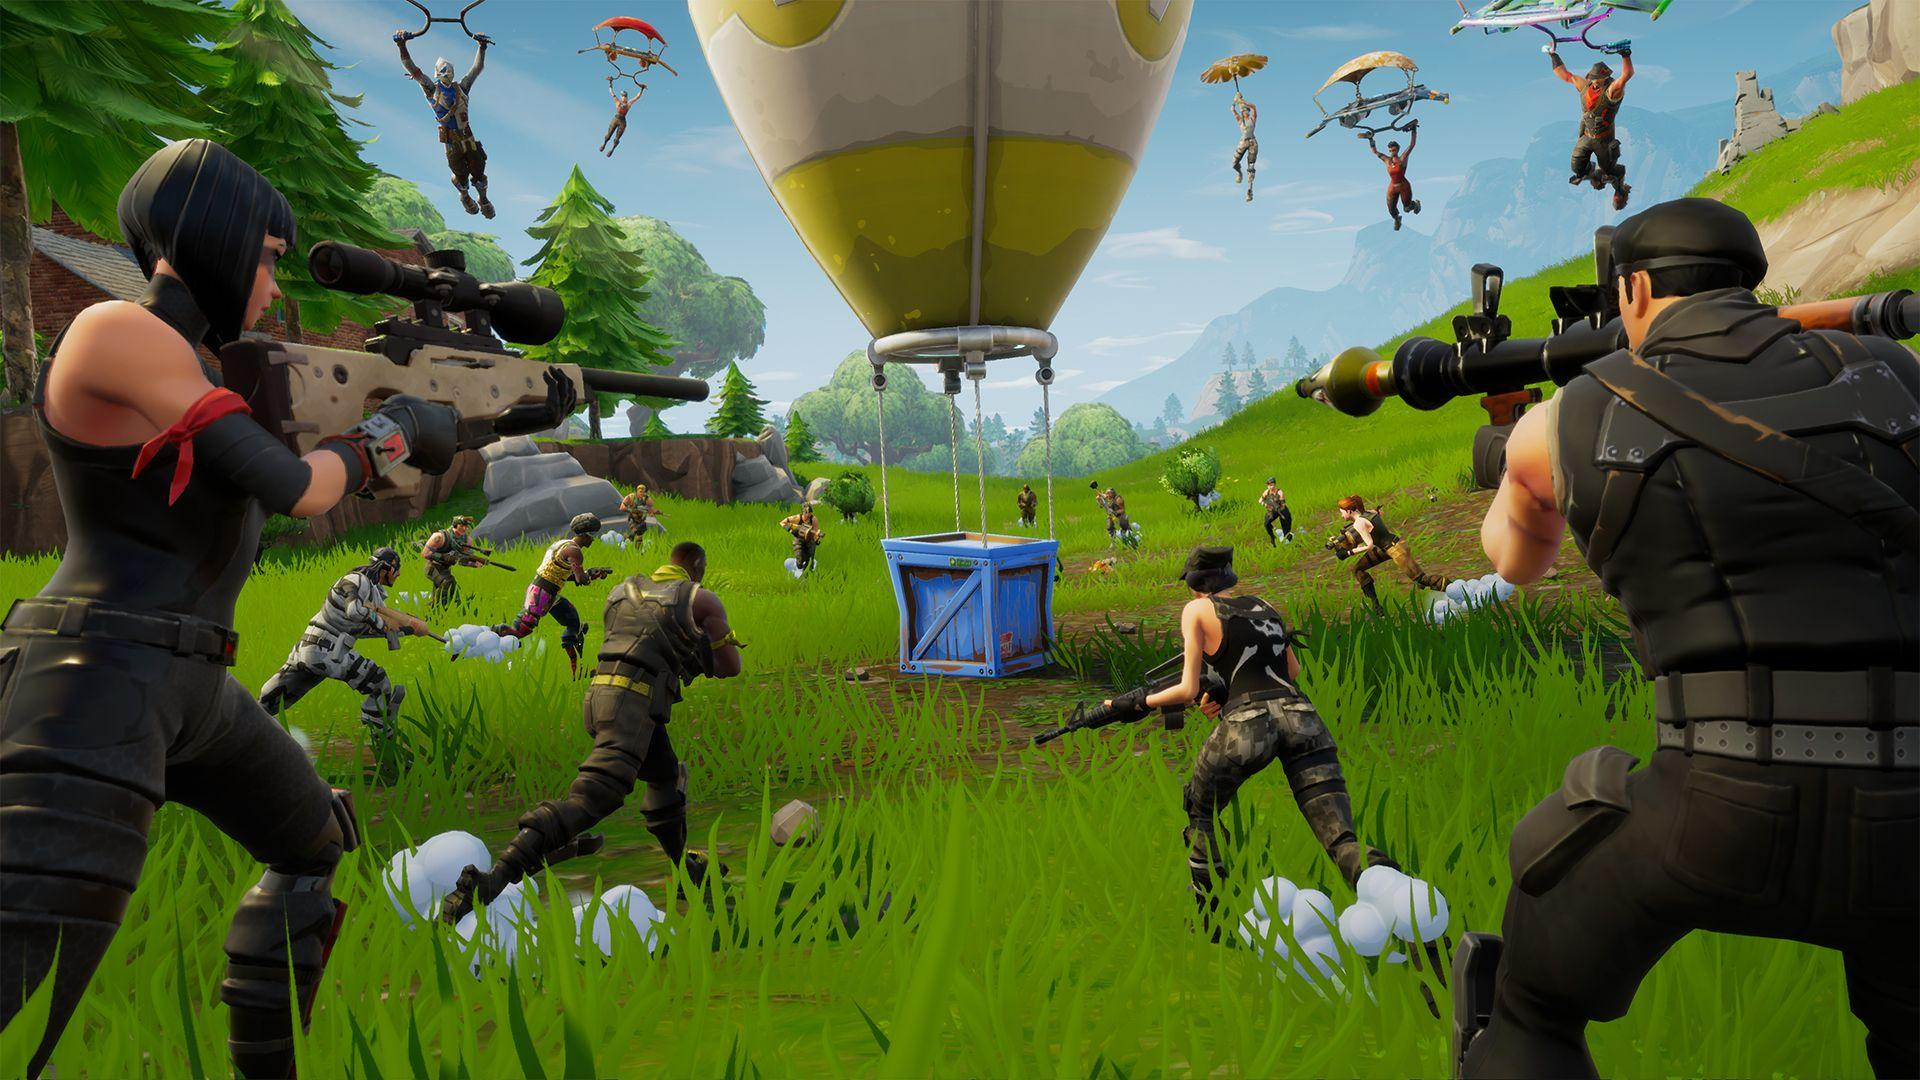 Flipboard: Fortnite 6.2 Patch Notes with Fortnitemares, Cube